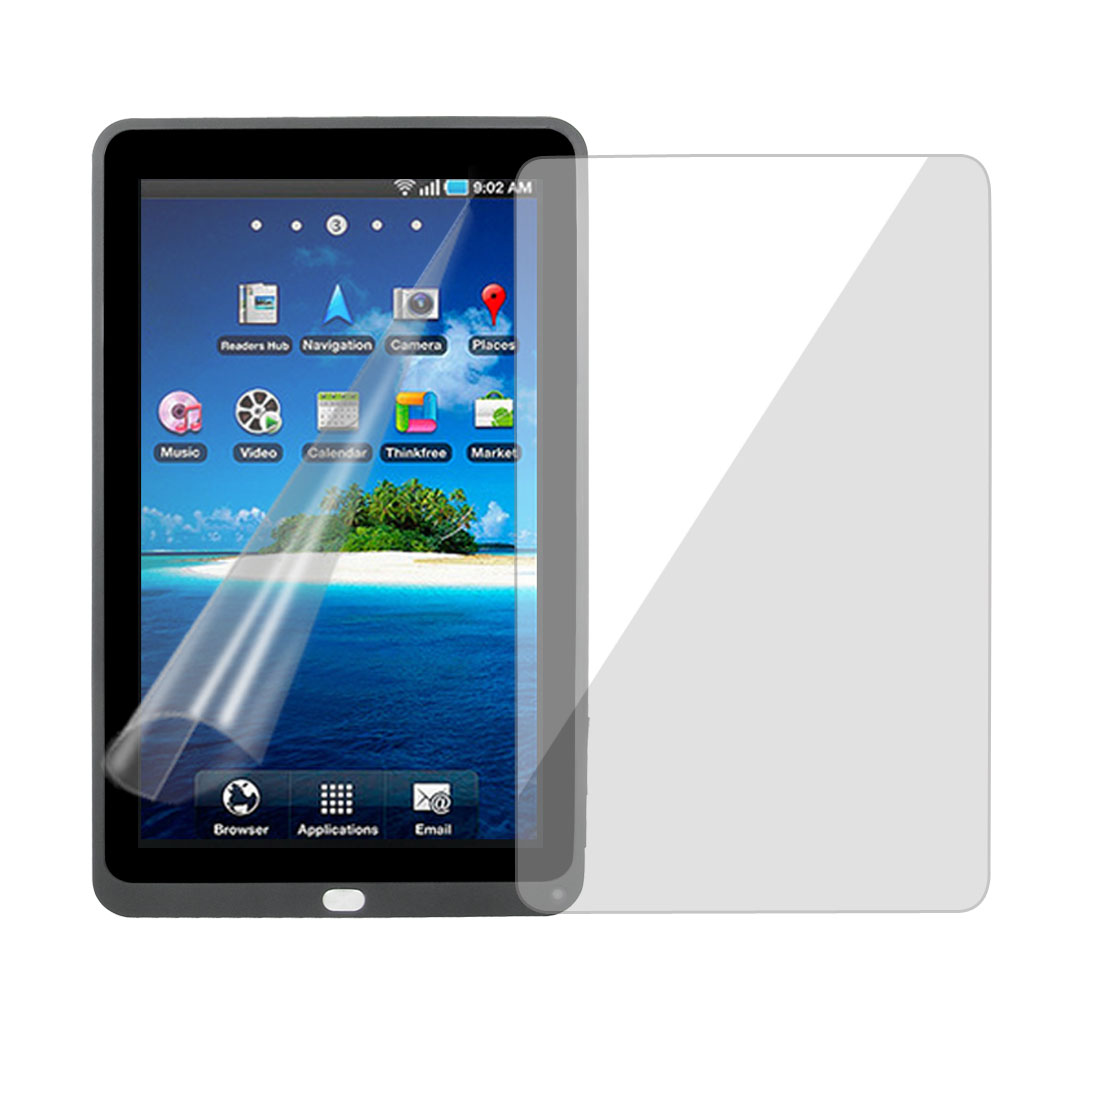 Clear LCD Screen Protector Cover Guard Film for Cobalt S1000 Android Tablet